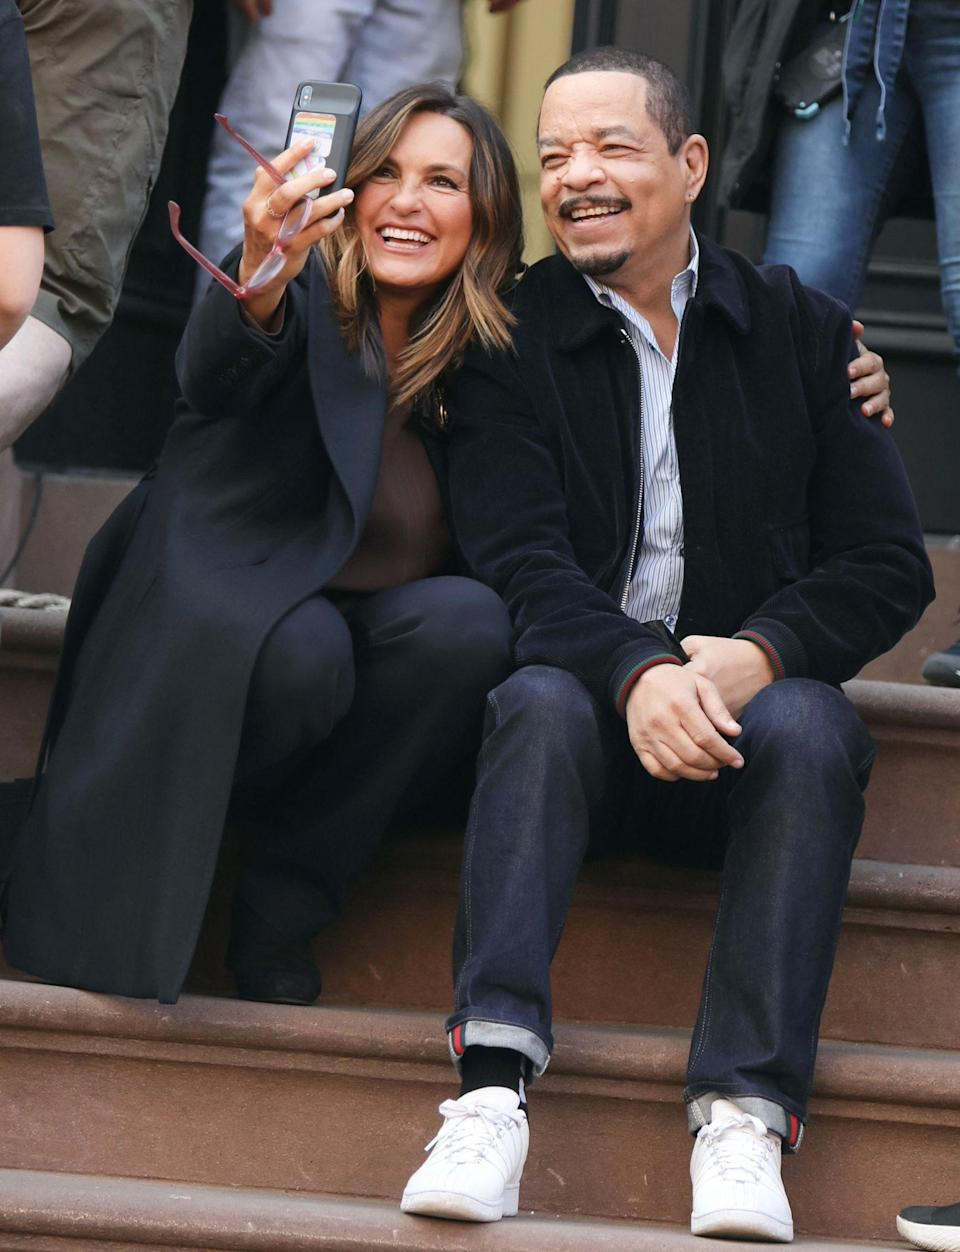 <p>Mariska Hargitay and Ice T snap a smiling selfie on the set of <i>Law and Order: Special Victims Unit</i> on Monday in N.Y.C. </p>